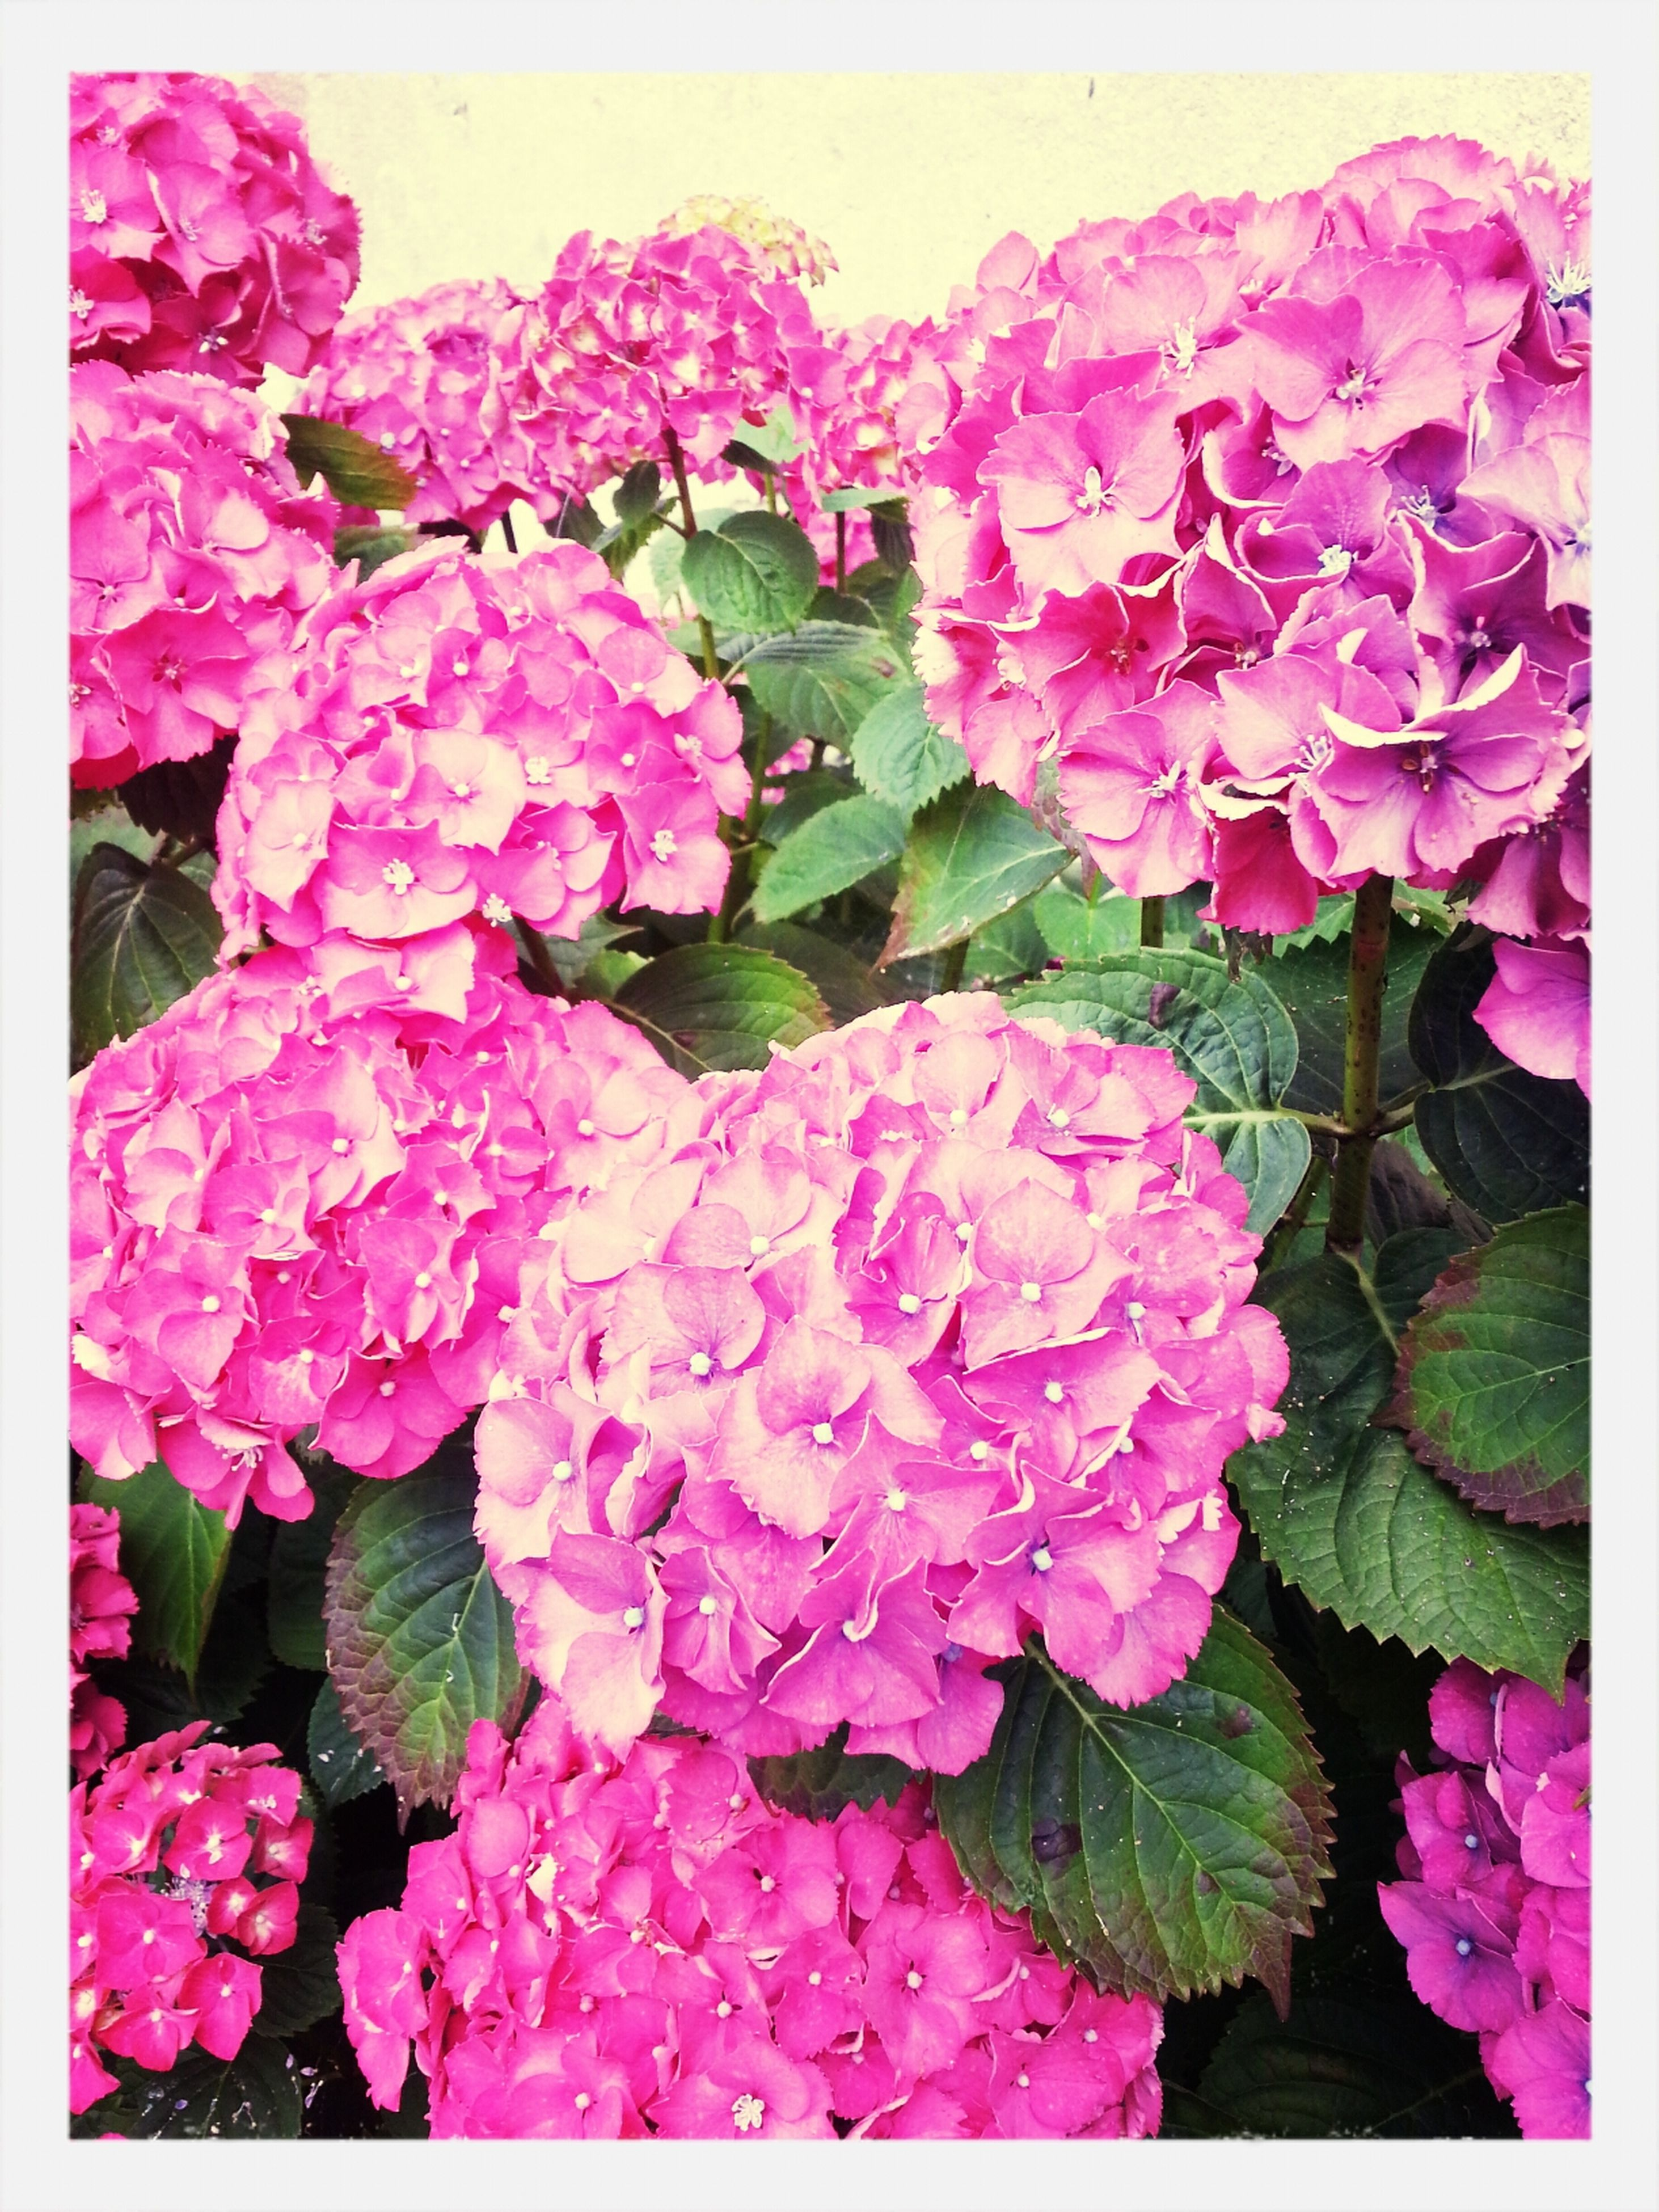 flower, freshness, transfer print, fragility, petal, beauty in nature, pink color, auto post production filter, flower head, growth, bunch of flowers, nature, blooming, close-up, plant, blossom, bouquet, in bloom, high angle view, pink